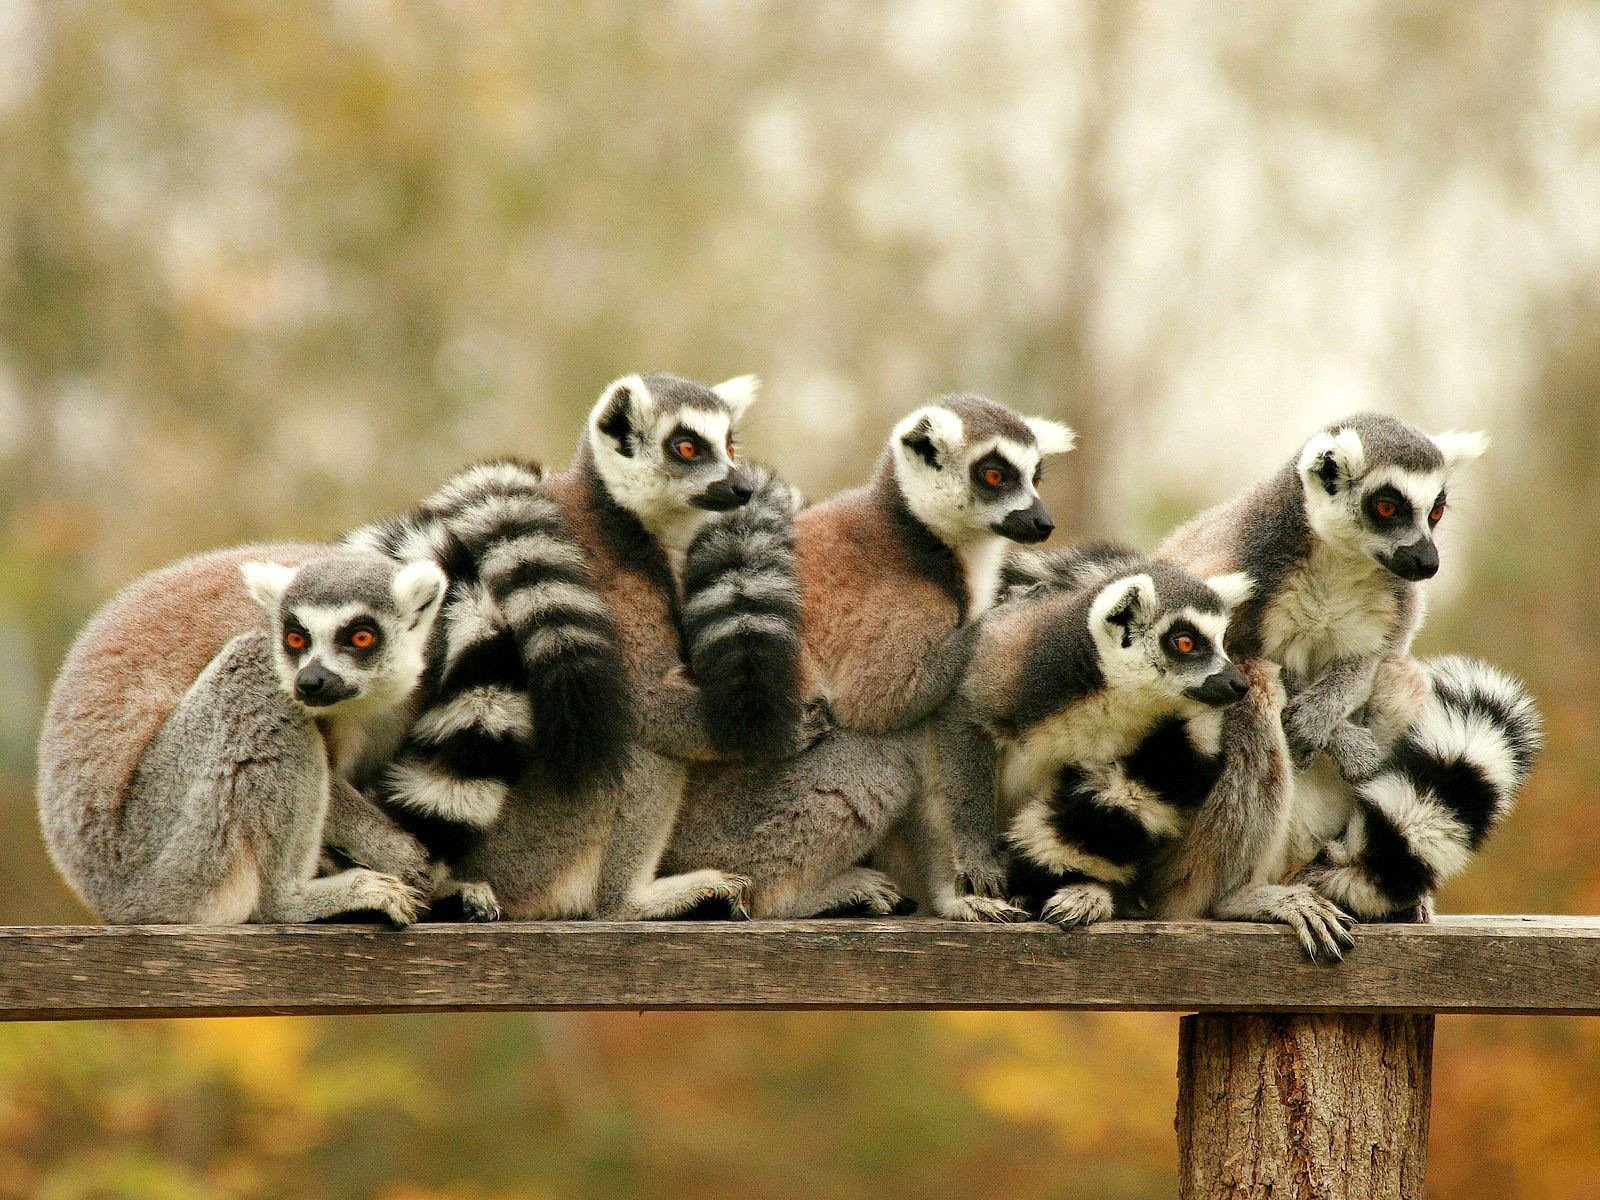 Lemur Wallpaper and Background Image | 1600x1200 | ID ...